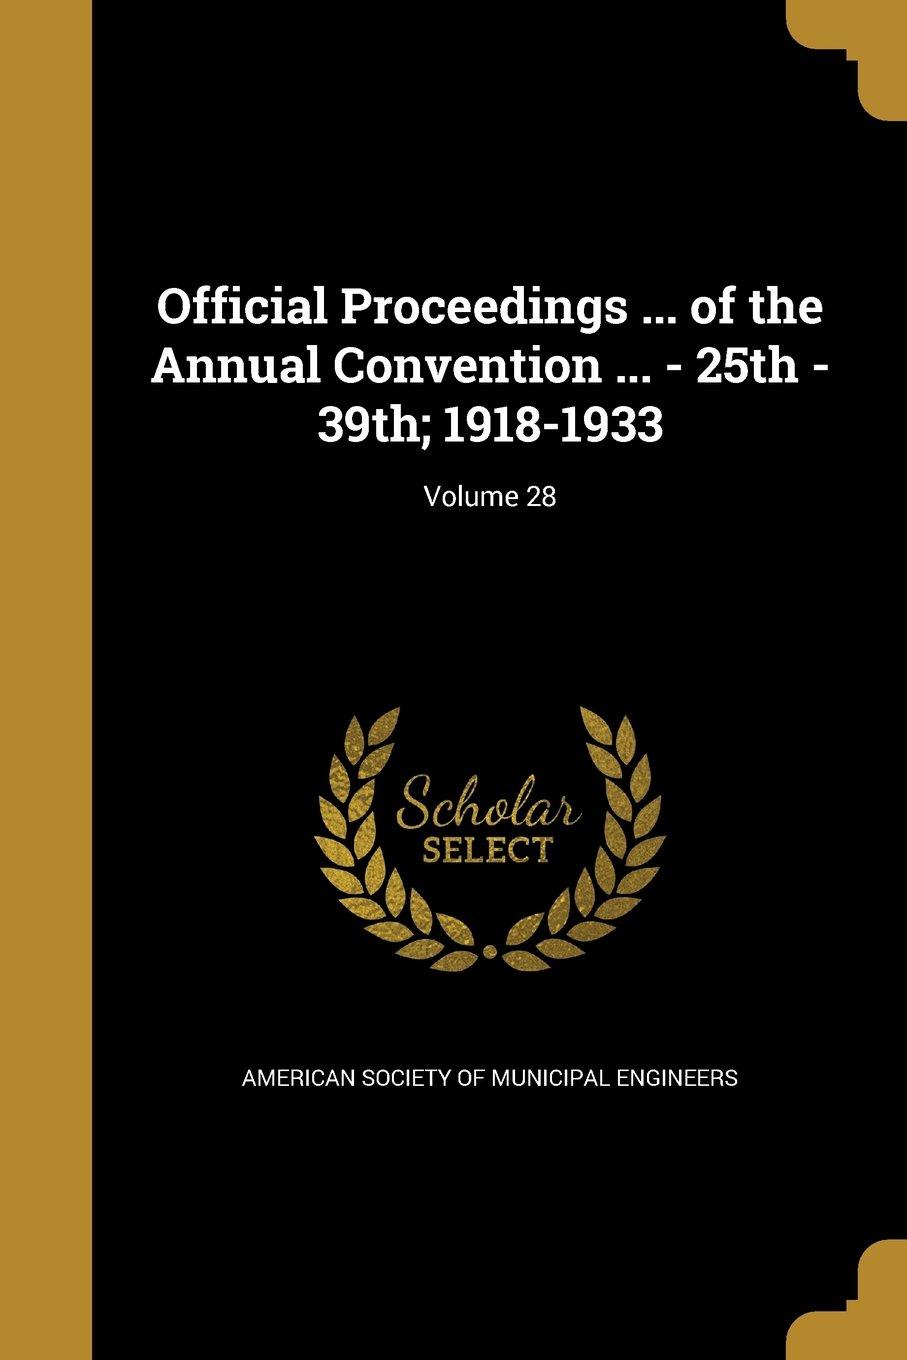 Official Proceedings ... of the Annual Convention ... - 25th - 39th; 1918-1933; Volume 28 pdf